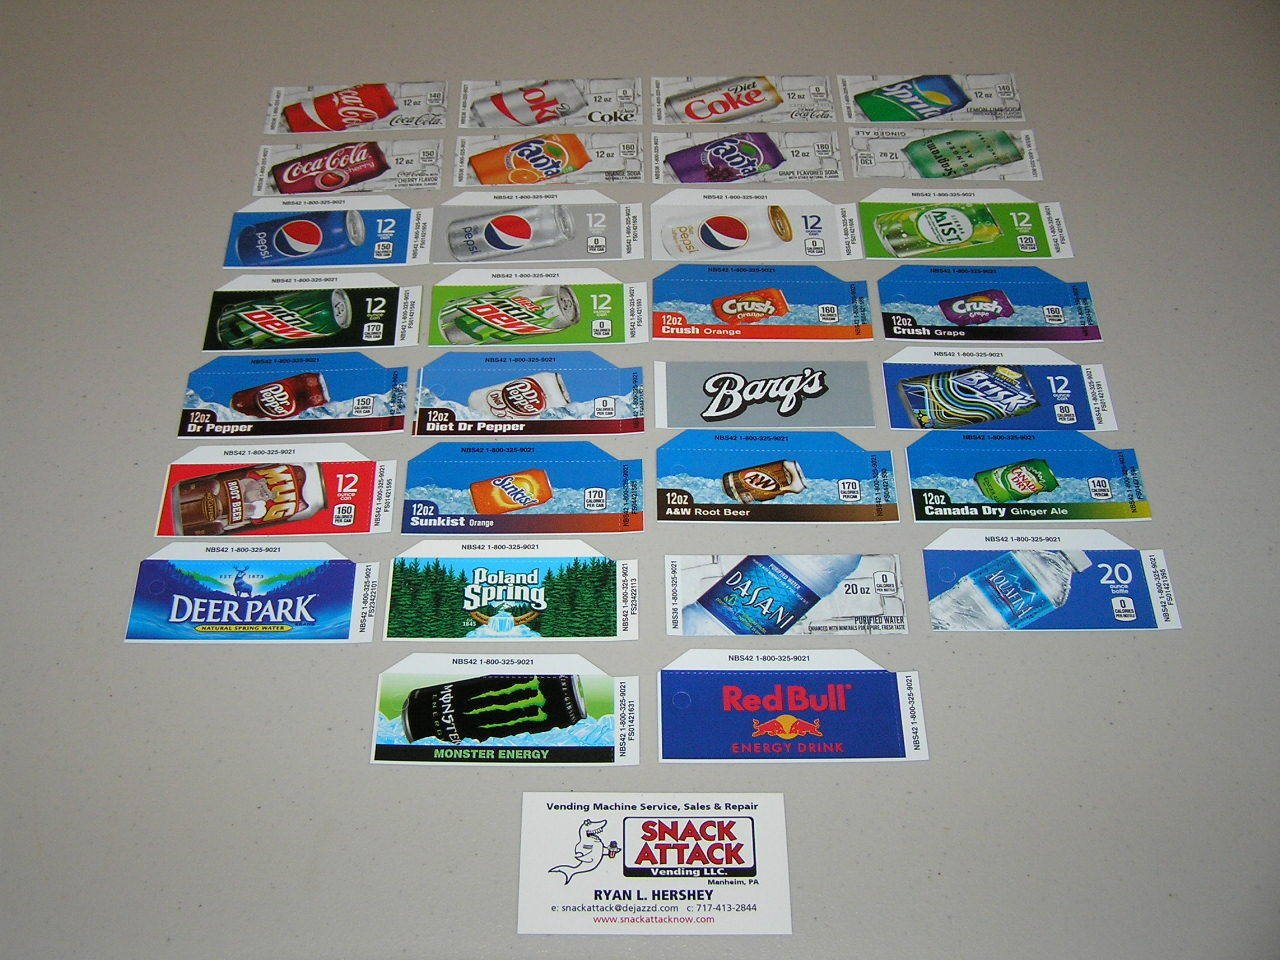 (30) Coke OR SODA Vending Machine 12oz CAN Vend Label Variety Pack /! by Snack Attack Vending